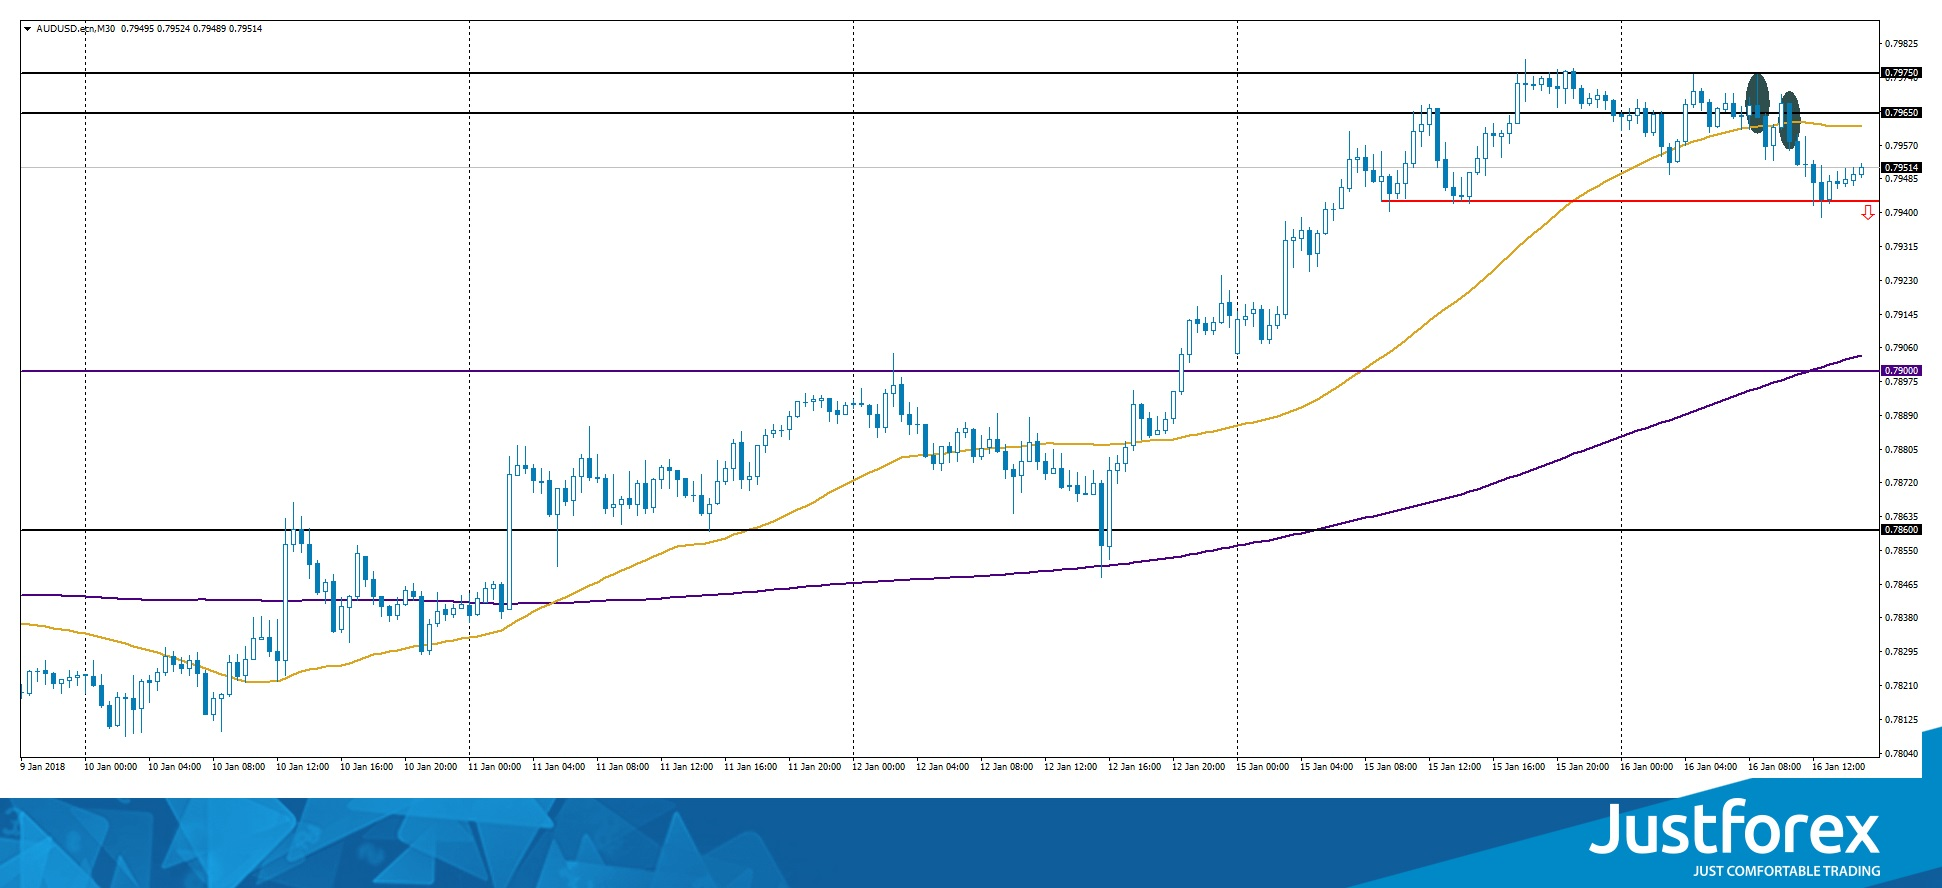 Pin Bar and Bearish Engulfing on AUD/USD